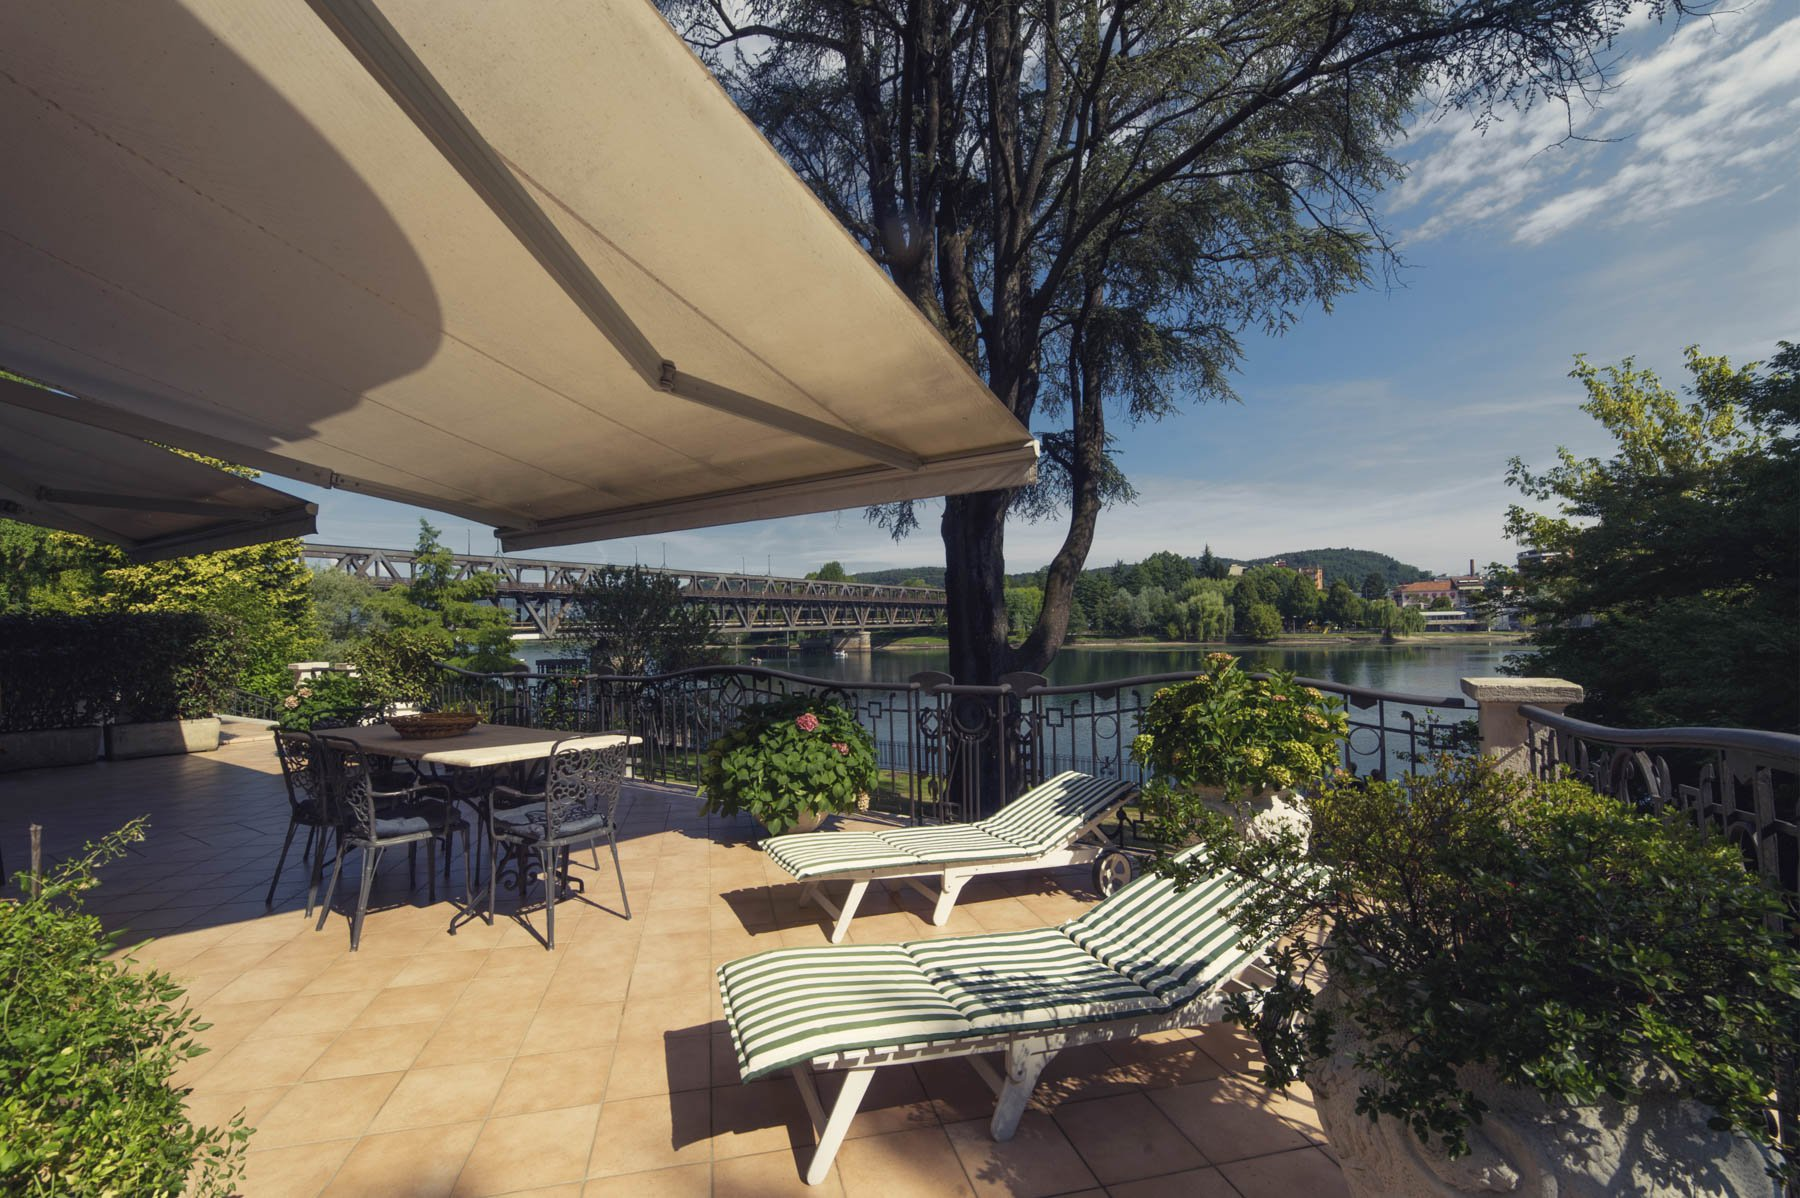 Prestigious apartment for sale in Castelletto Ticino - river view porch